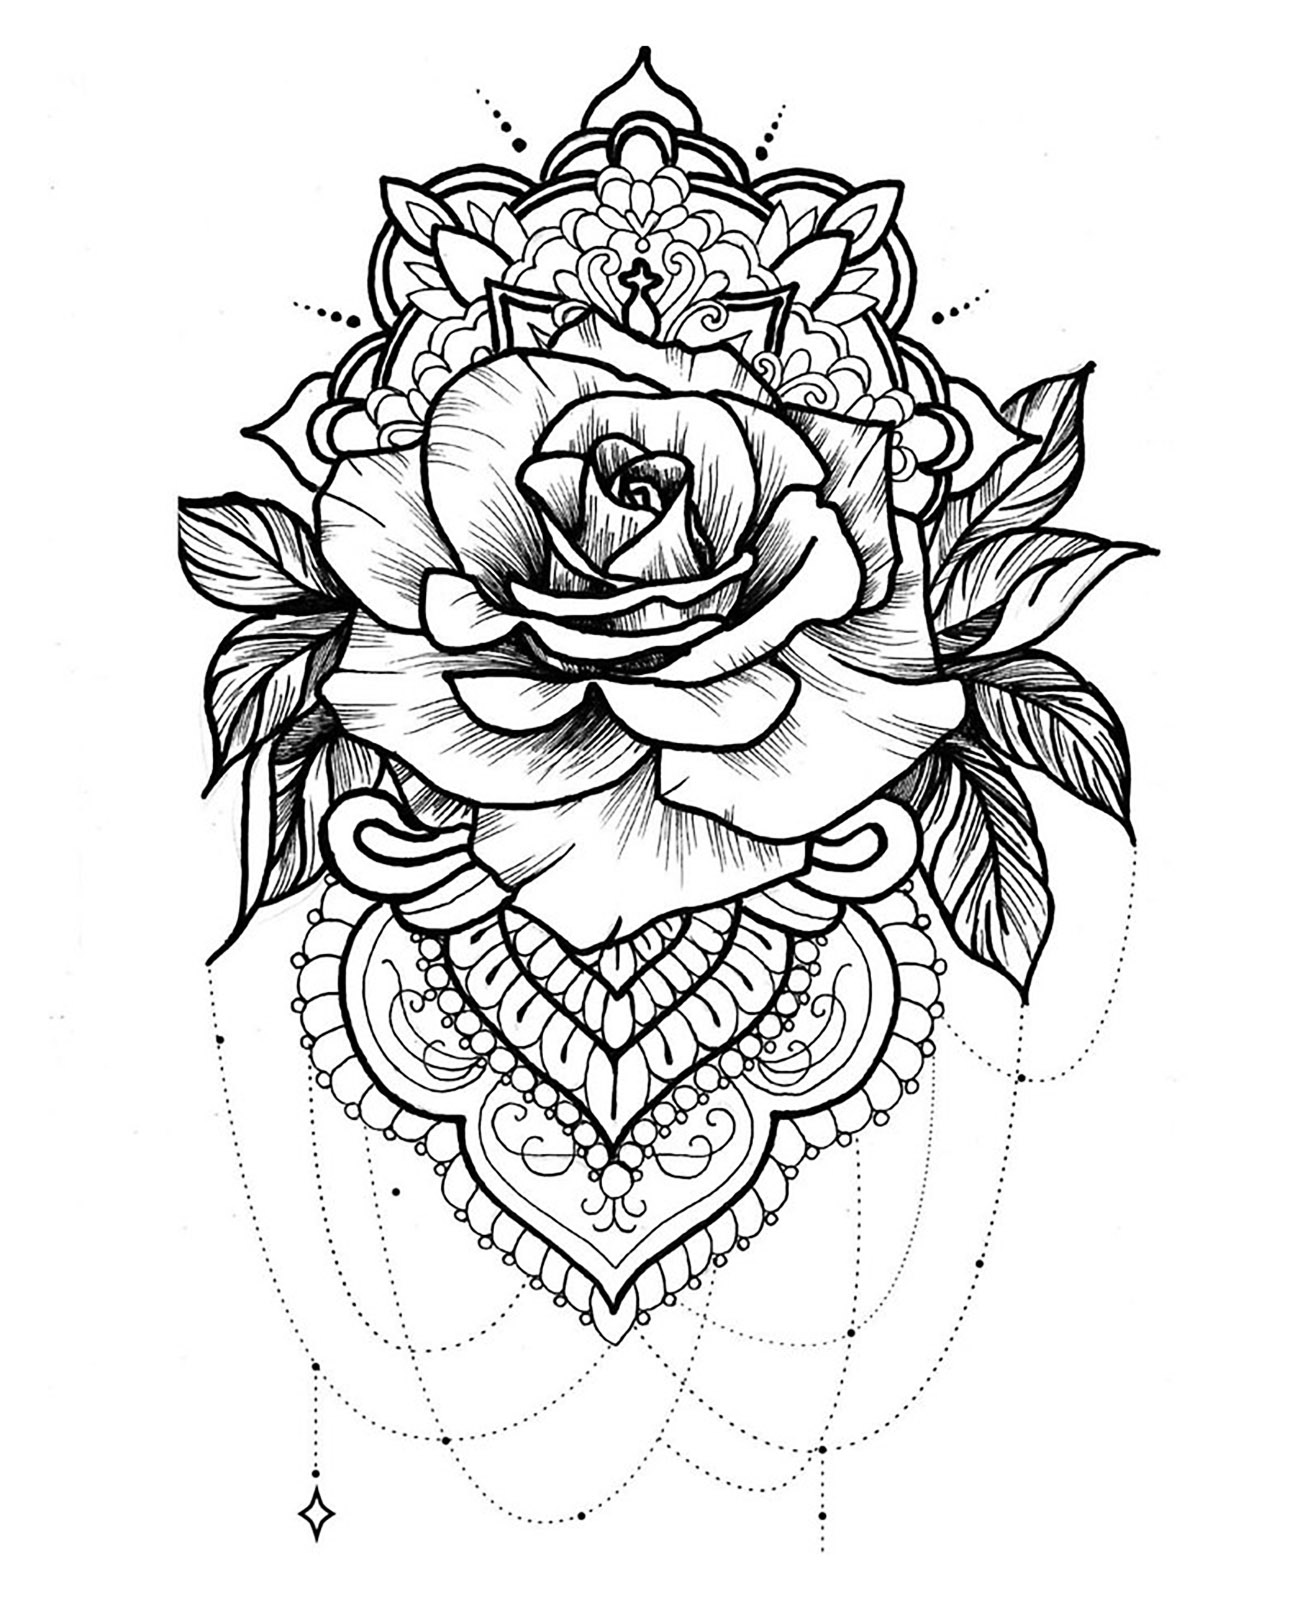 Mandala Idee Inspiration Tatouage 3 Inspiration Idees De